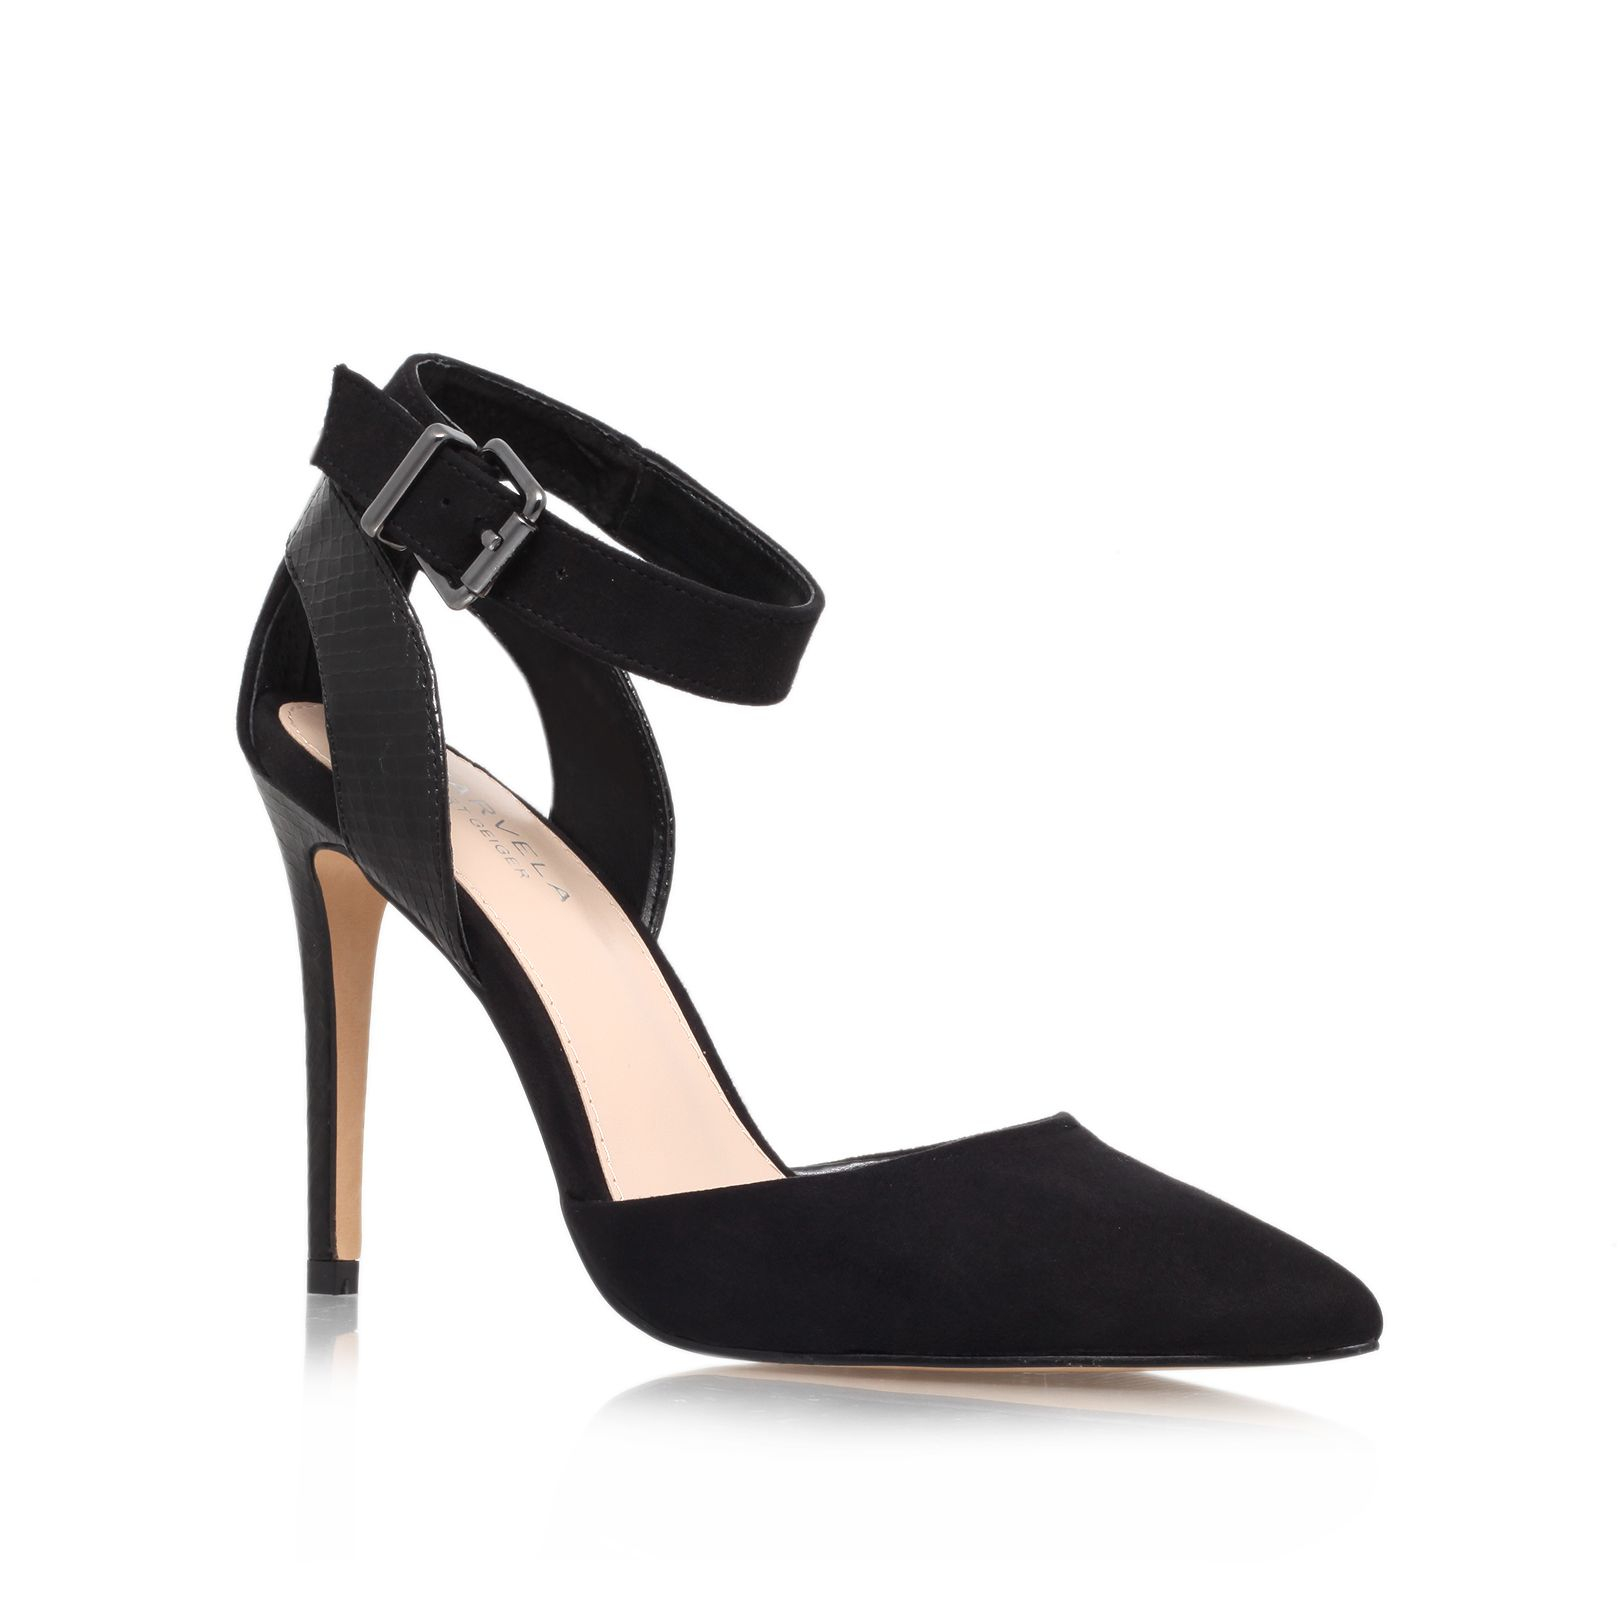 Carvela High Heel Occasion Shoes